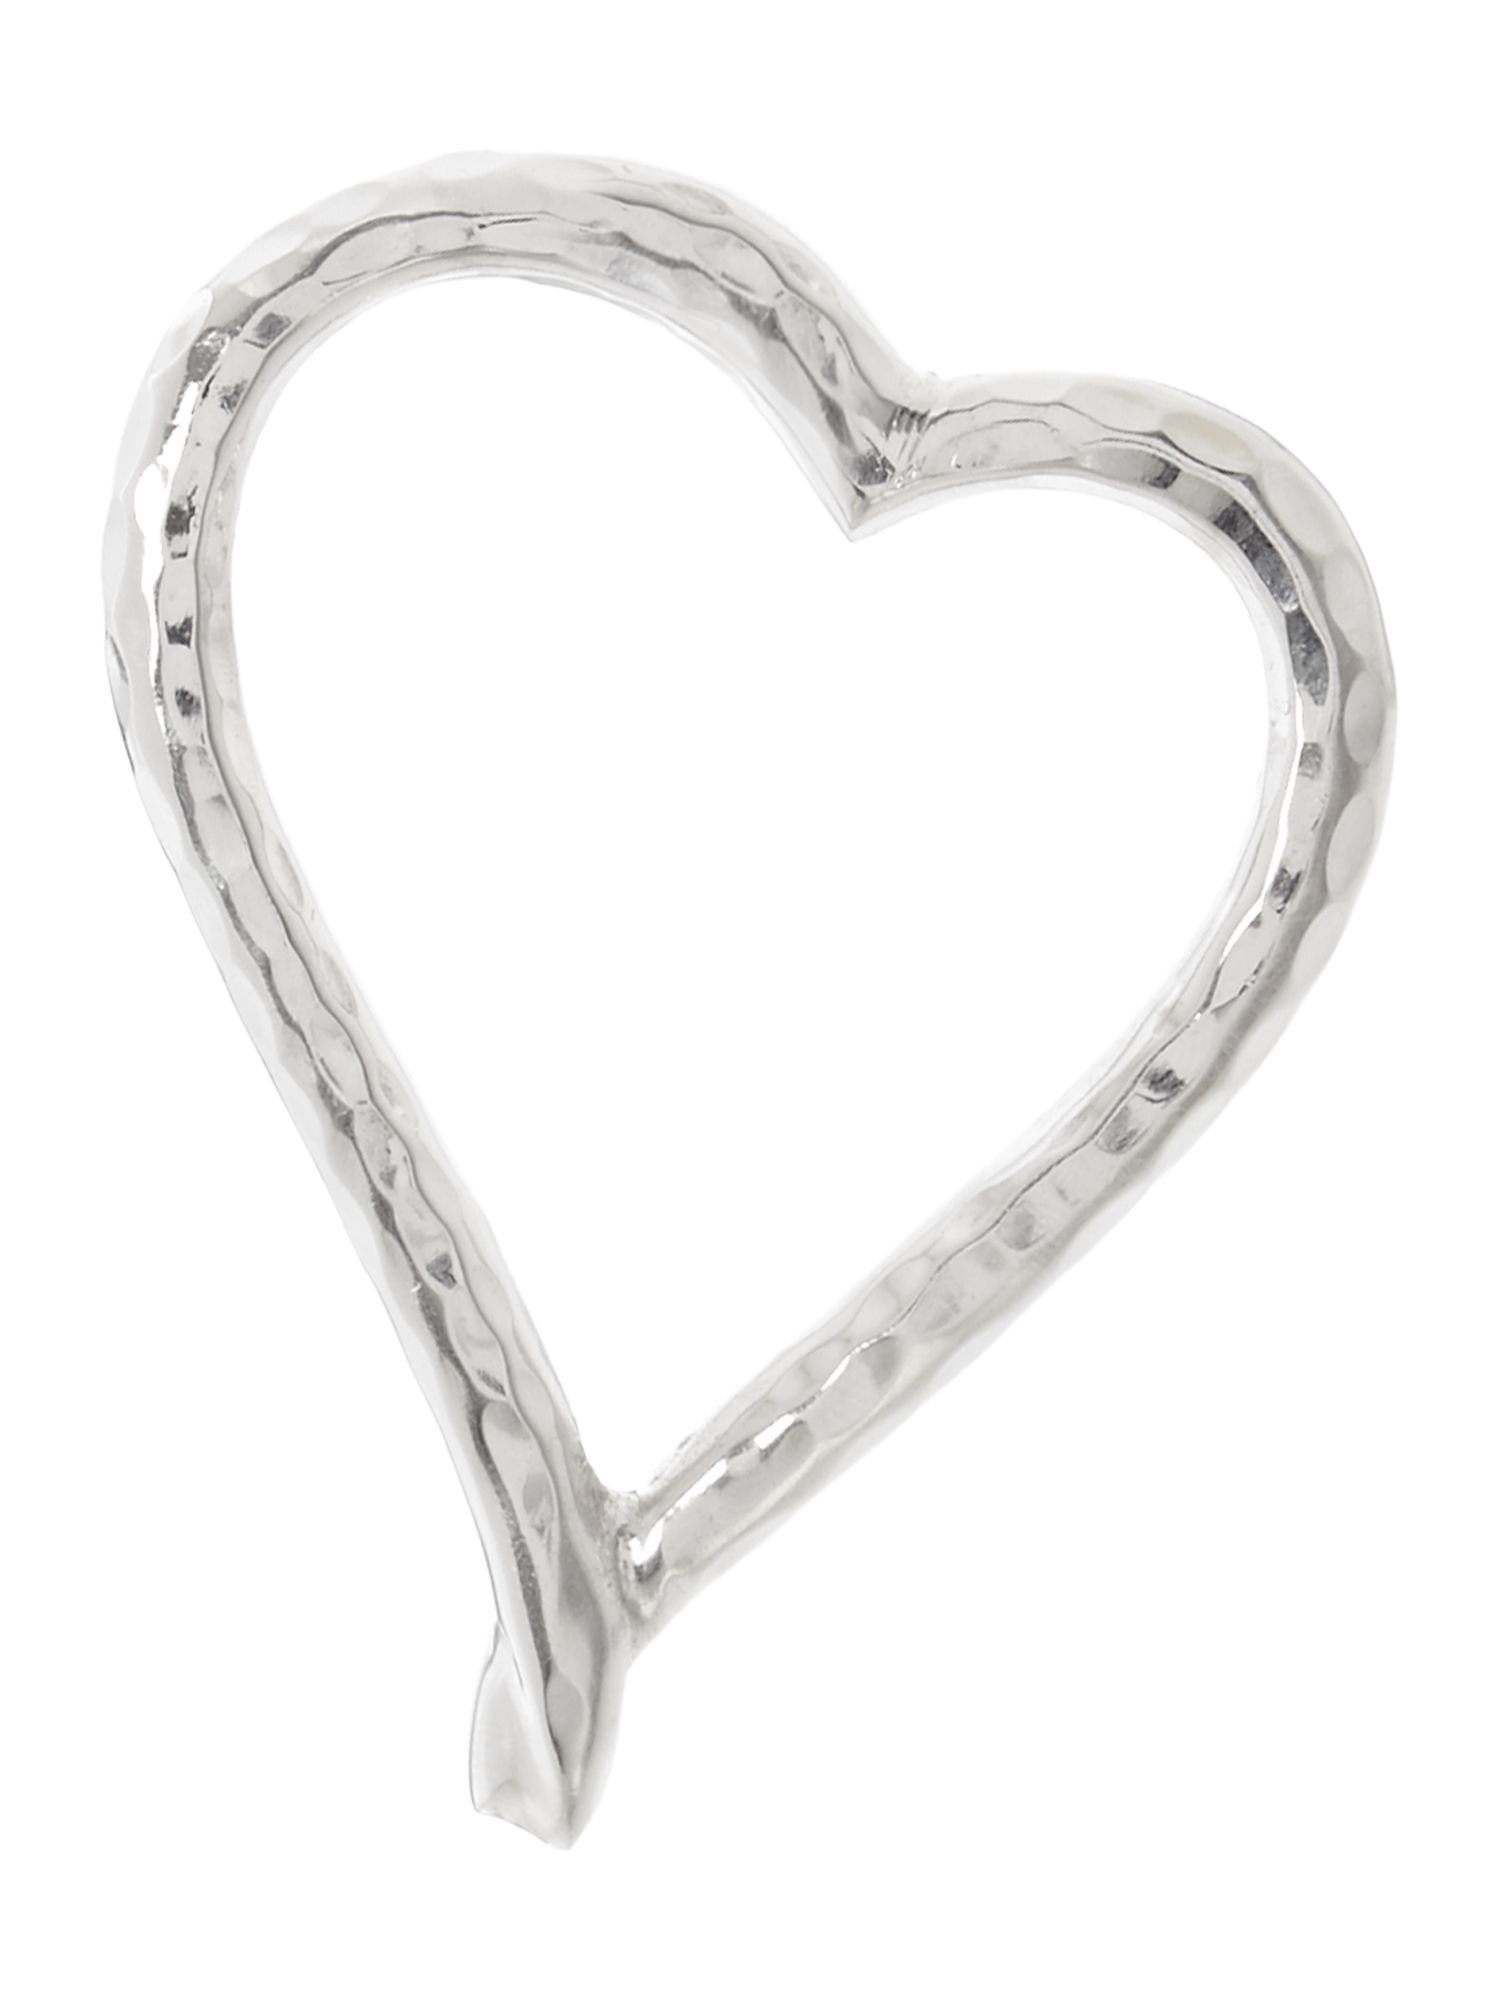 Linea Beaten metal heart napkin rings set of 4